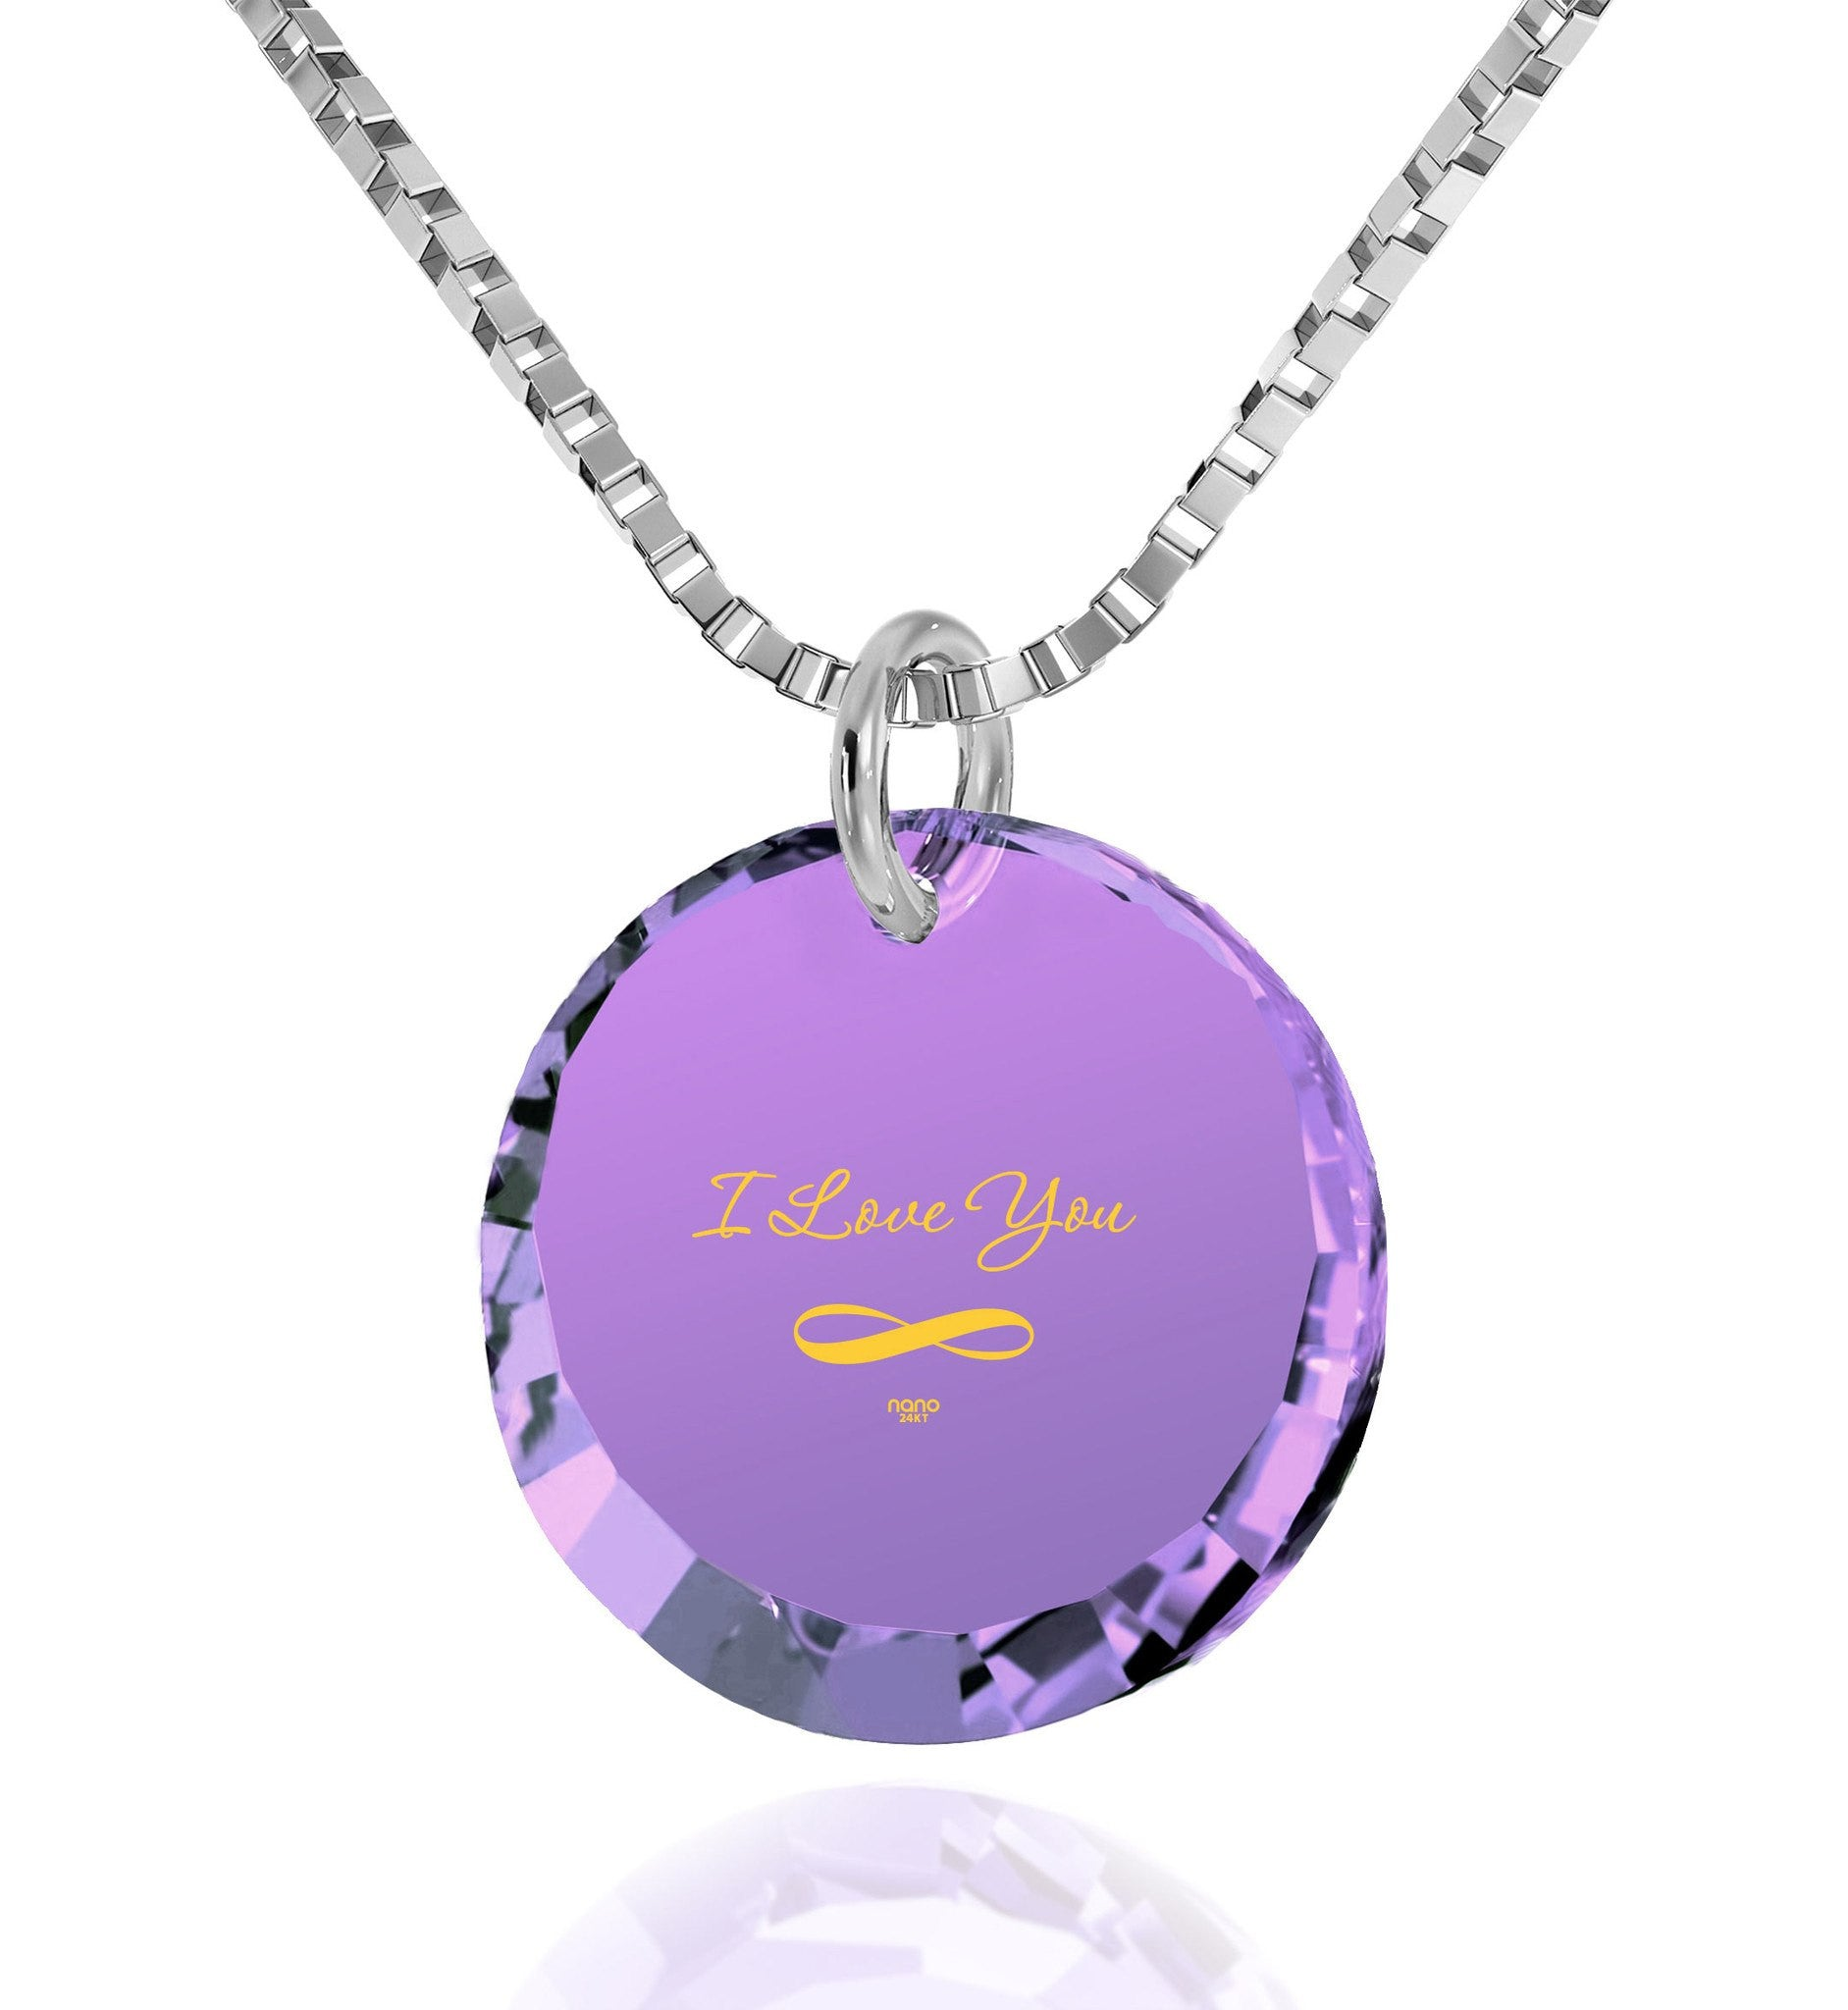 Good Presents for Girlfriend, Light Amethyst,Sterling Silver, 24k Imprint, Gift for Wife Birthday, Nano Jewelry